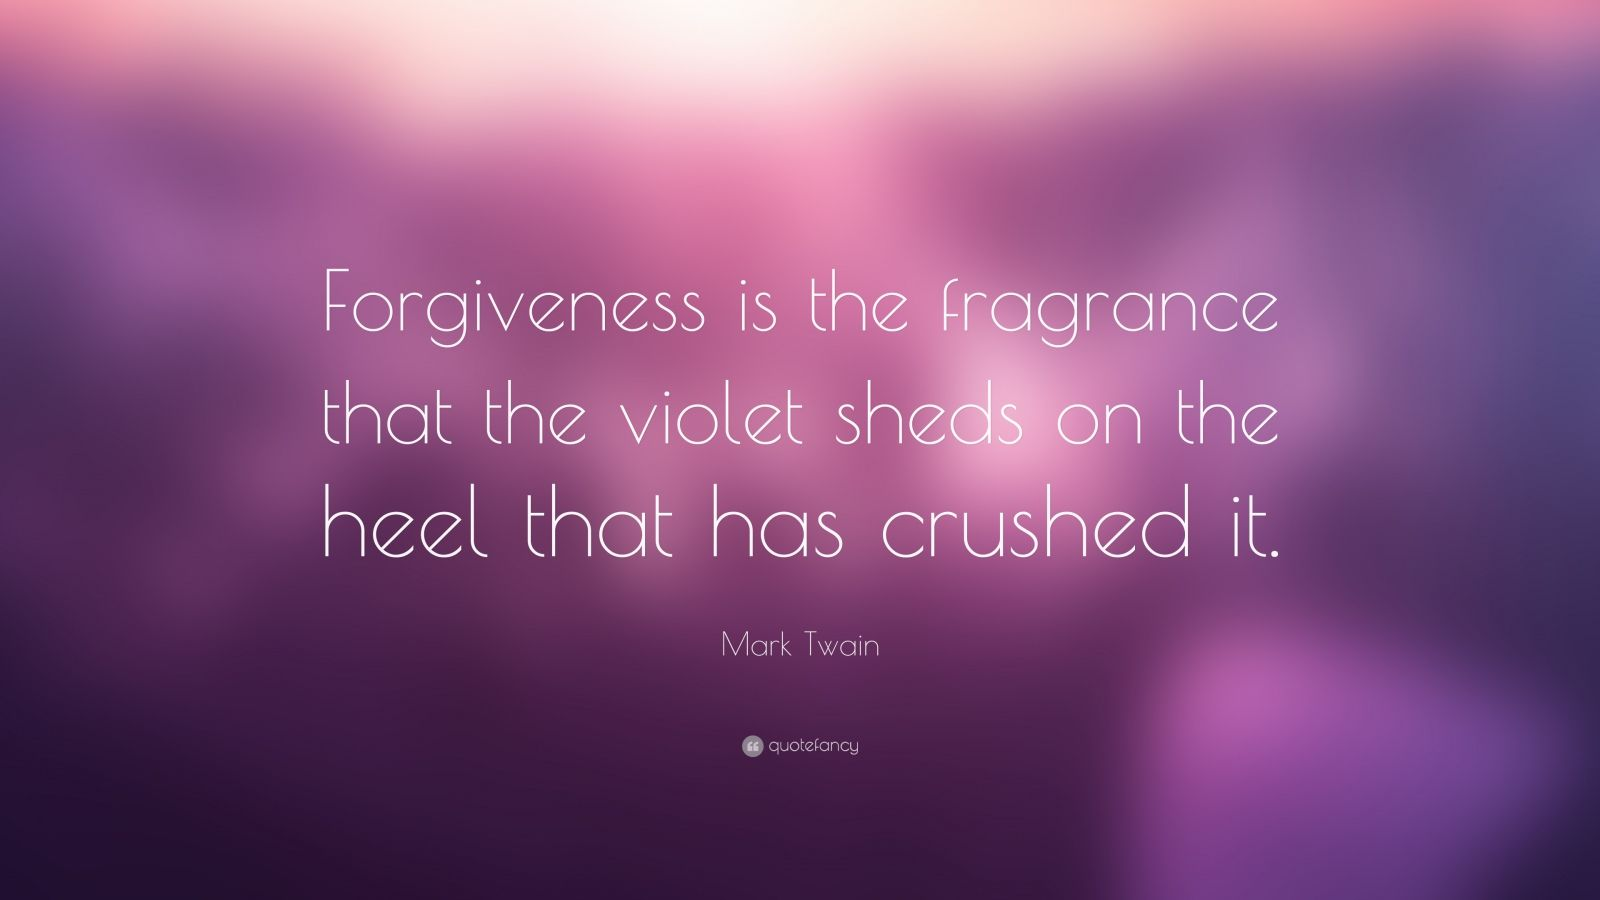 Beautiful Wallpapers With Inspirational Quotes Mark Twain Quote Forgiveness Is The Fragrance That The